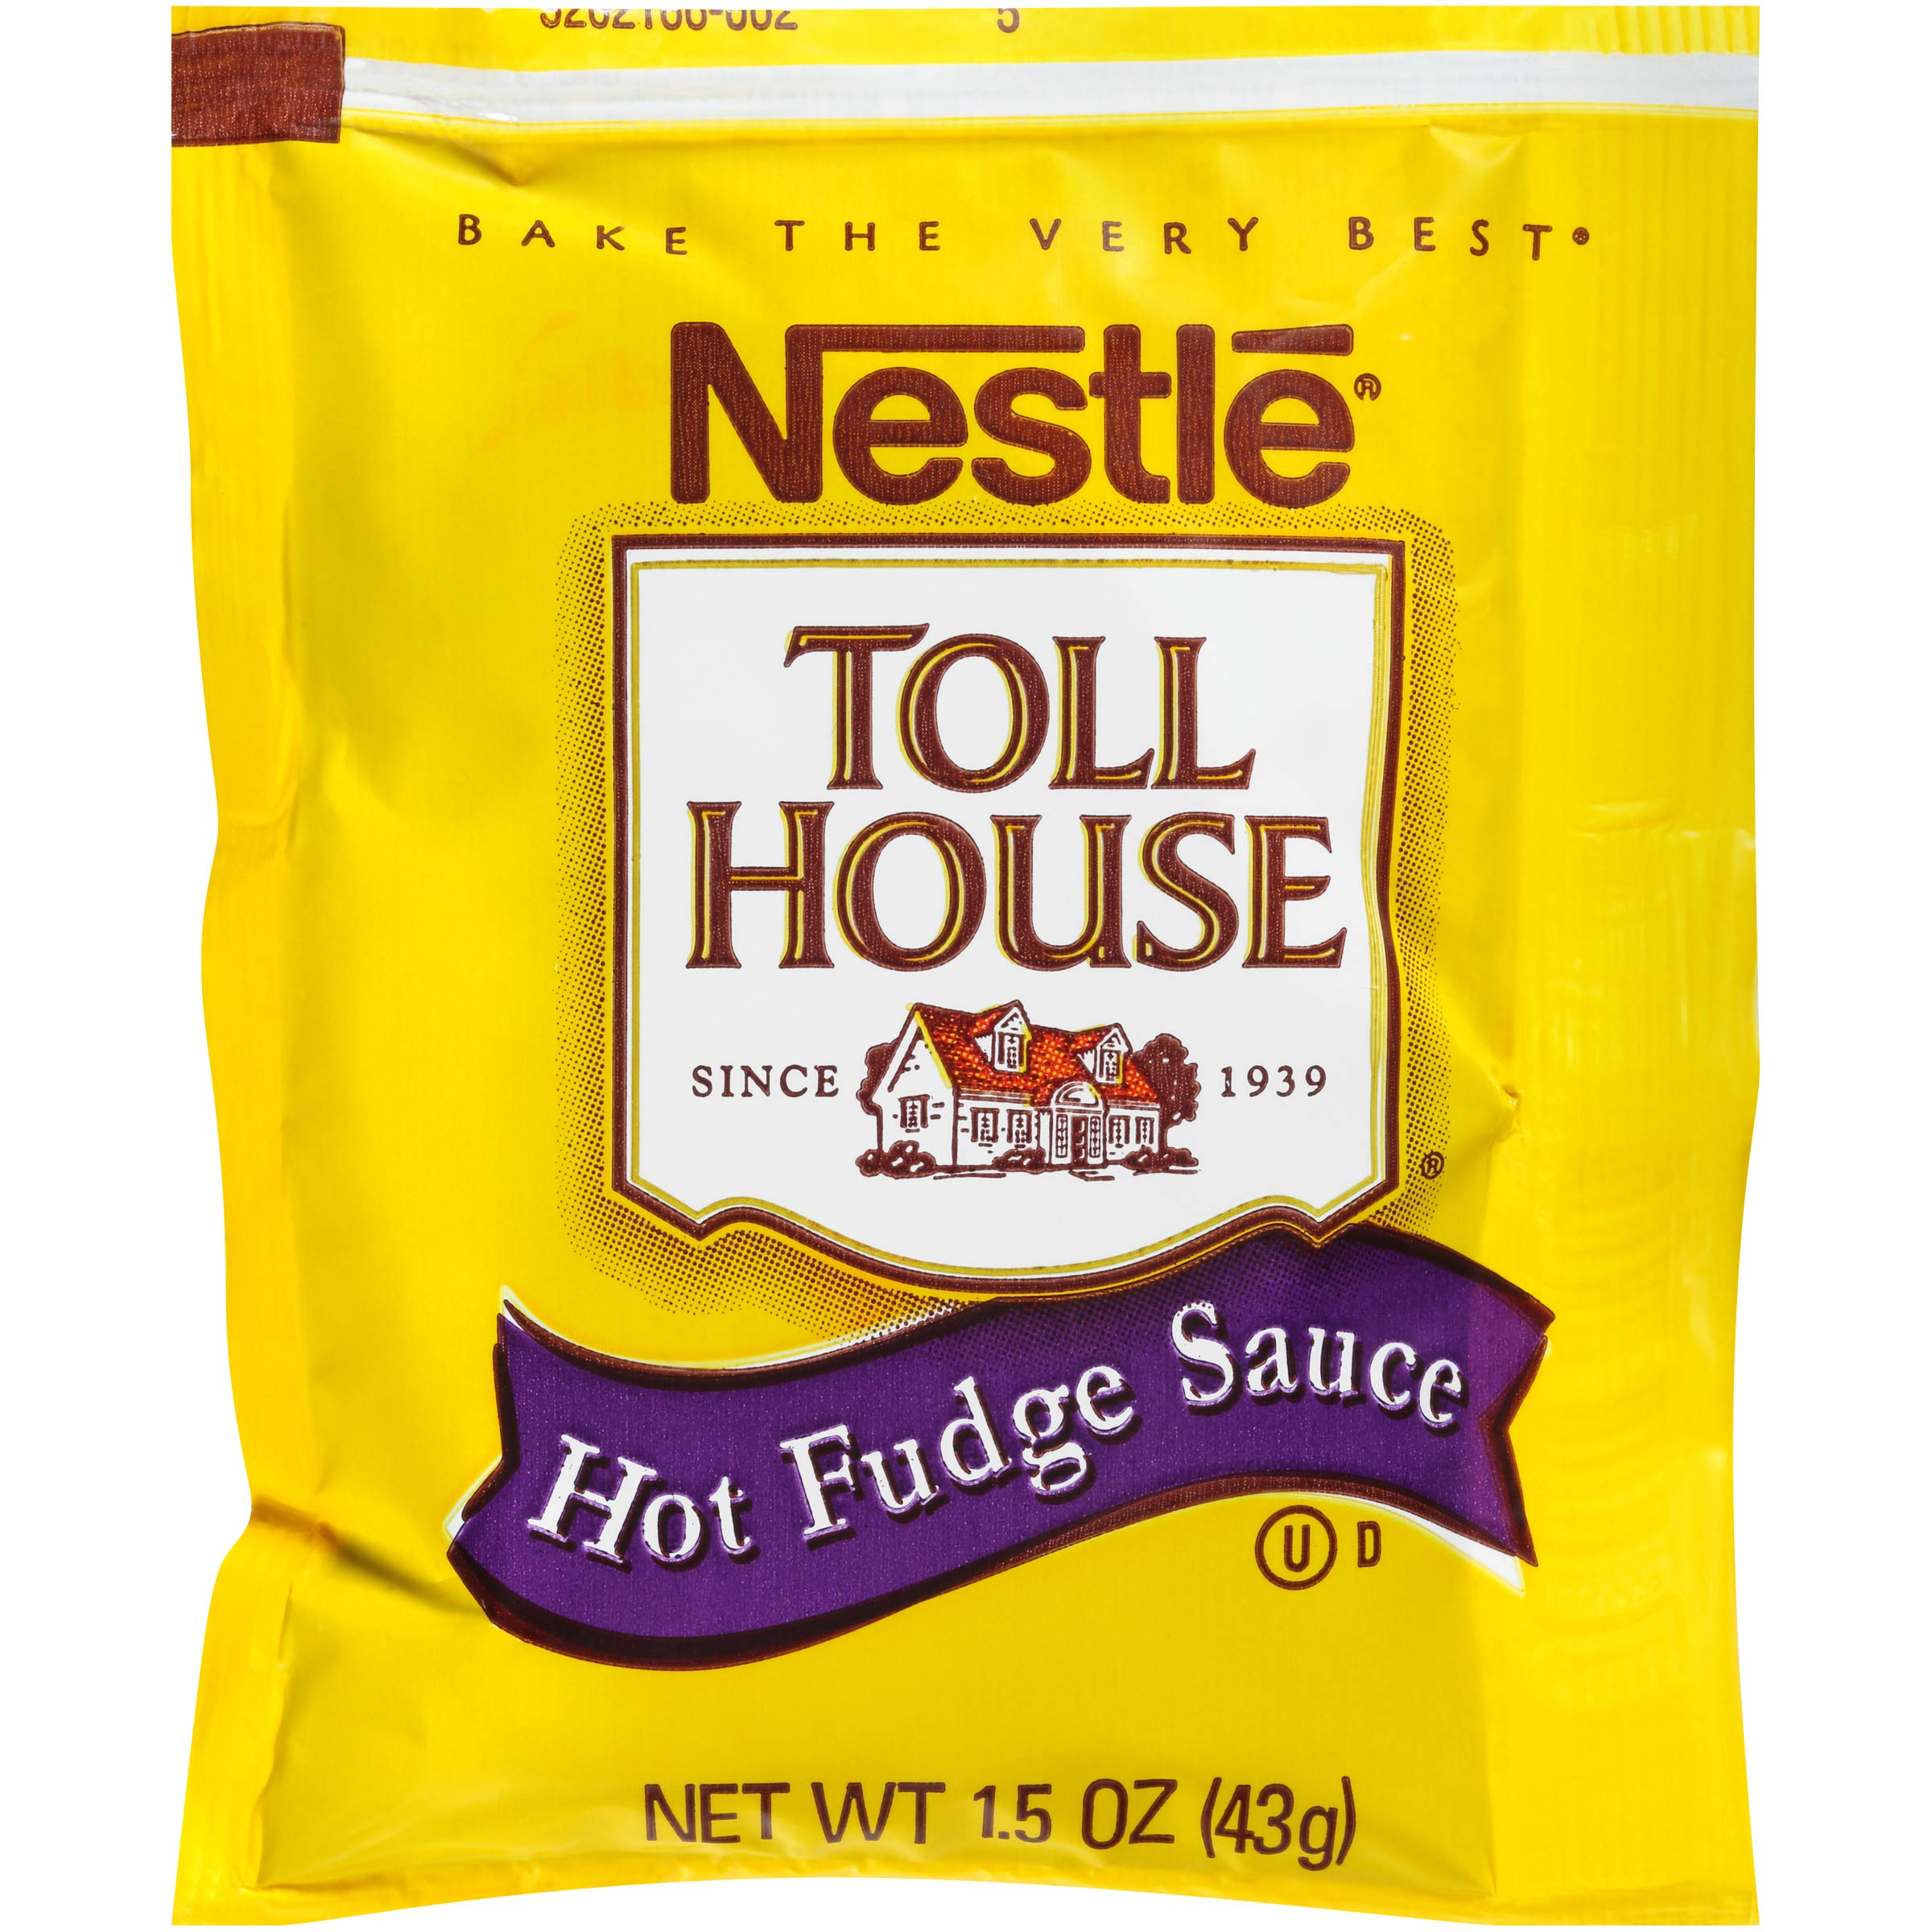 Nestle Single Serve Hot Fudge Sauce, 1.5 oz. Packets (Pack of 100) by Nestle (Image #1)